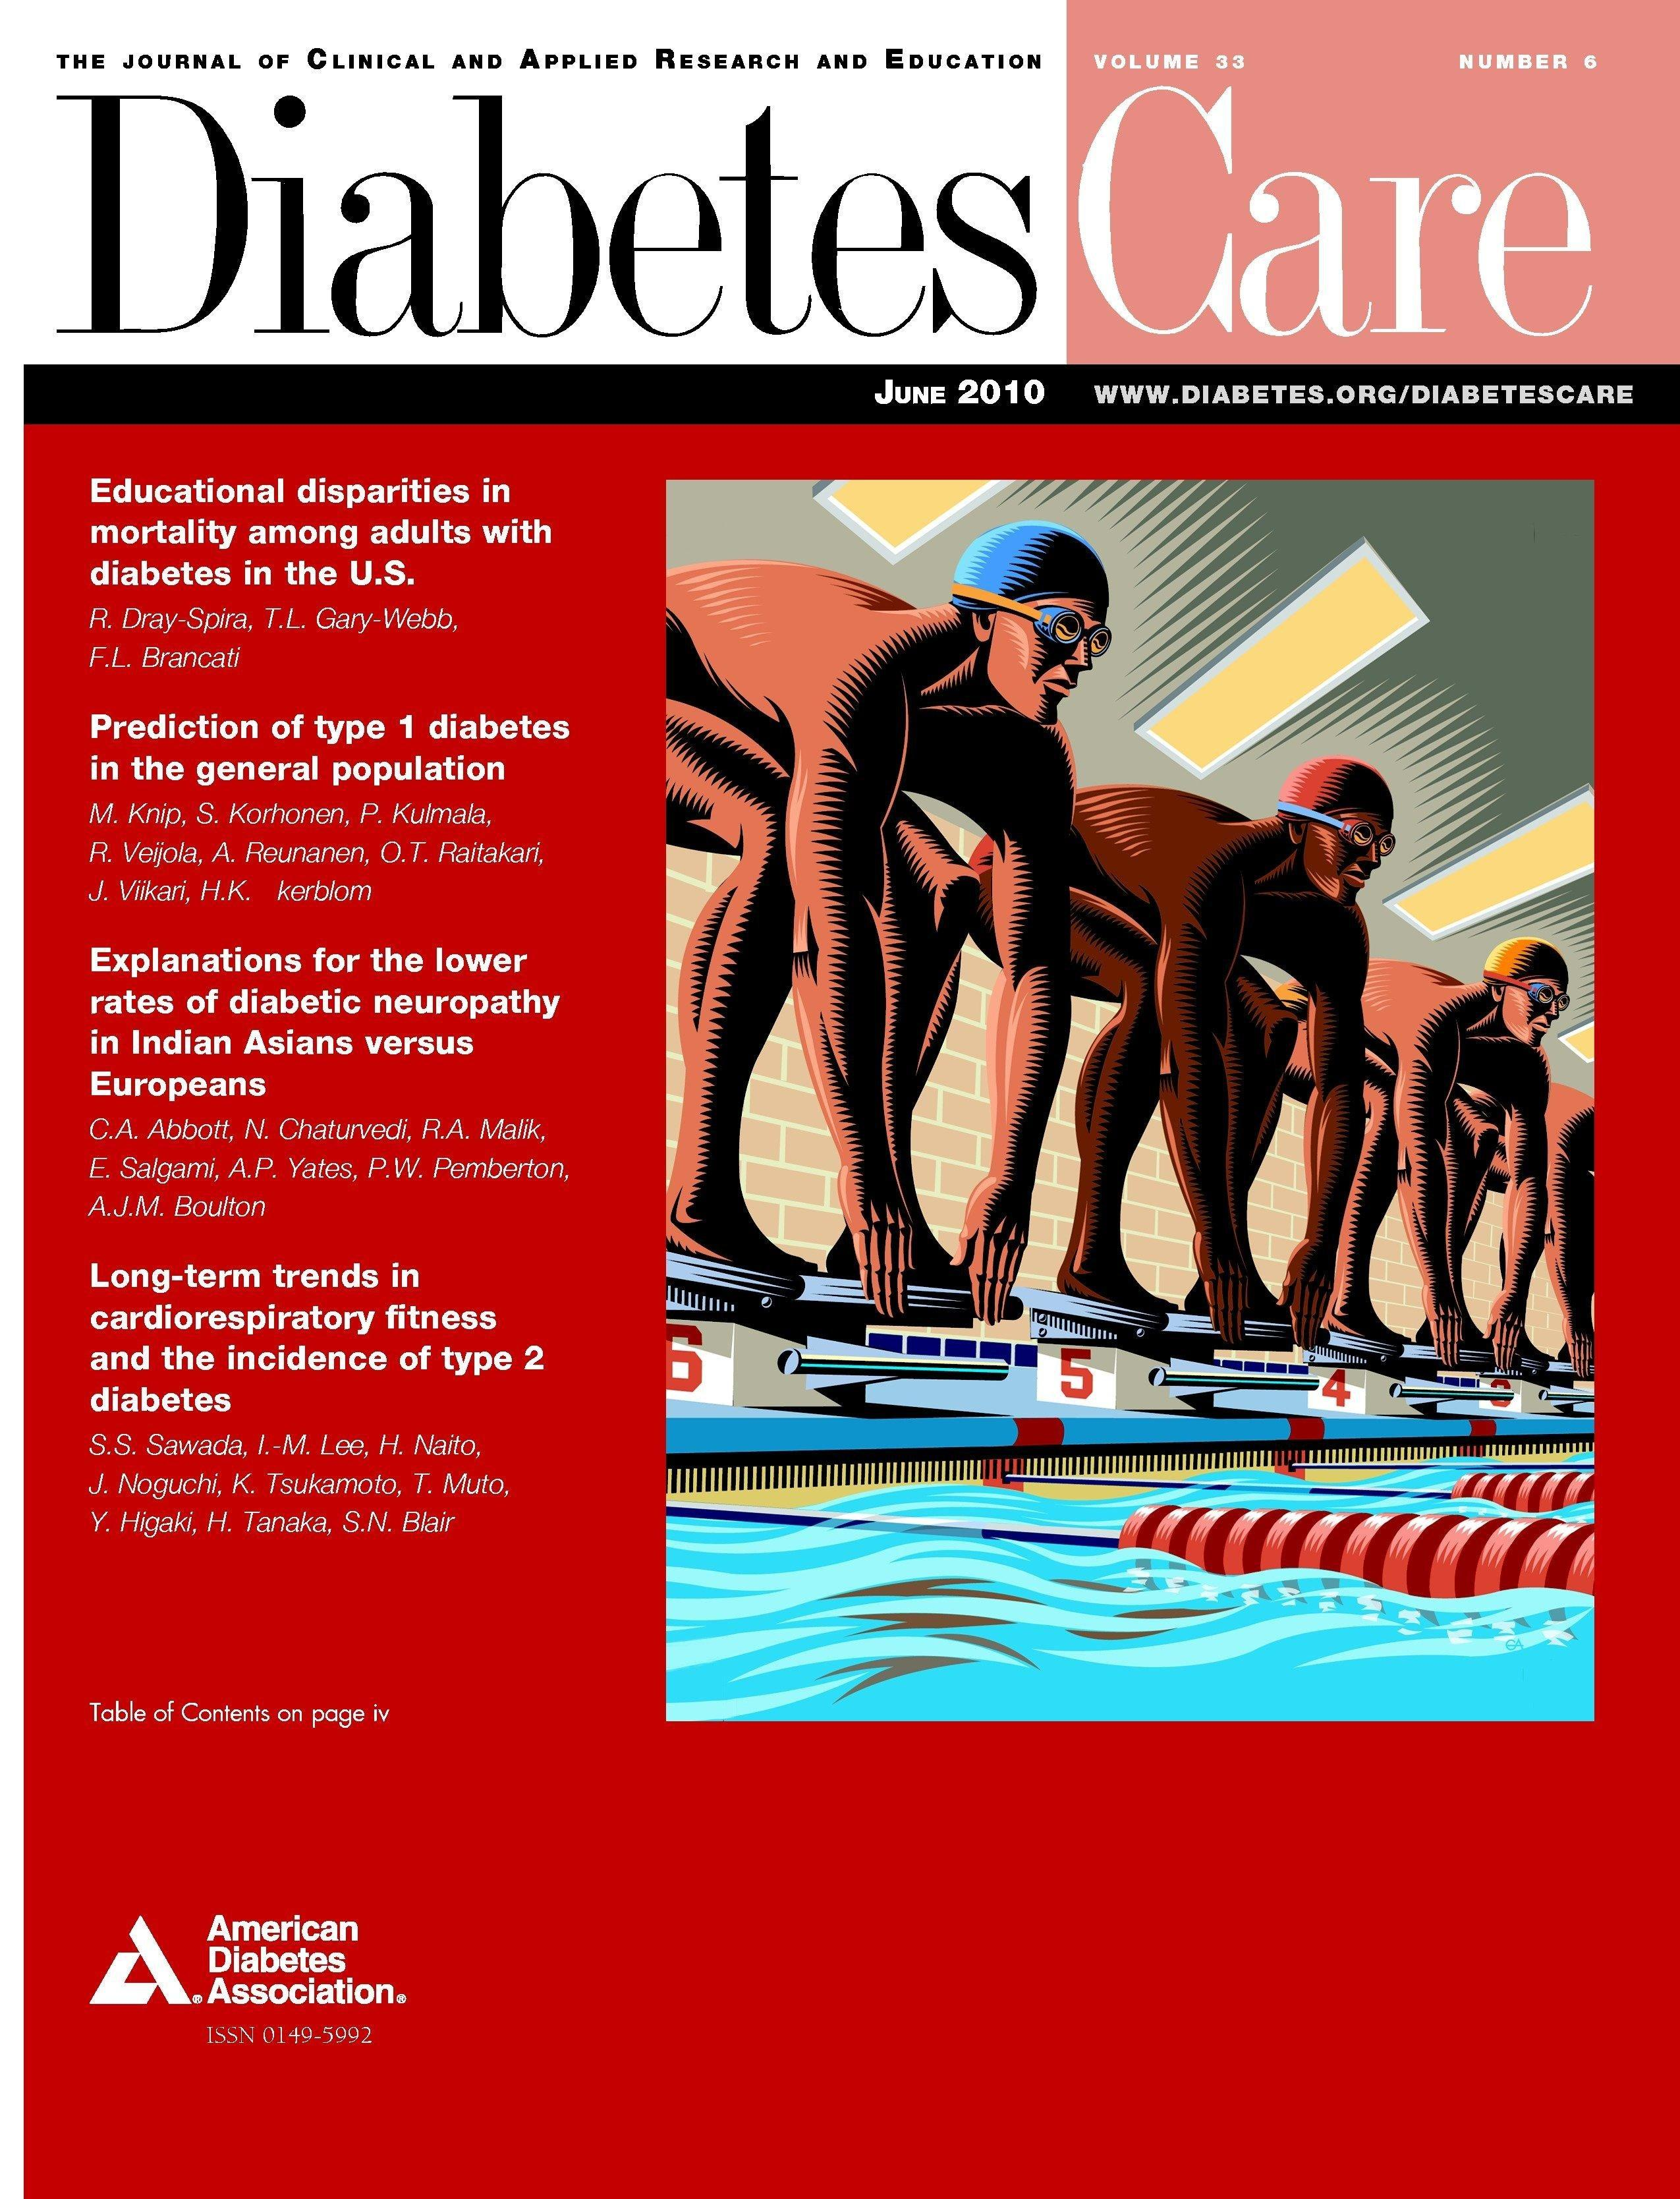 A 24-week, Randomized, Treat-to-target Trial Comparing Initiation Of Insulin Glargine Once-daily With Insulin Detemir Twice-daily In Patients With Type 2 Diabetes Inadequately Controlled On Oral Glucose-lowering Drugs